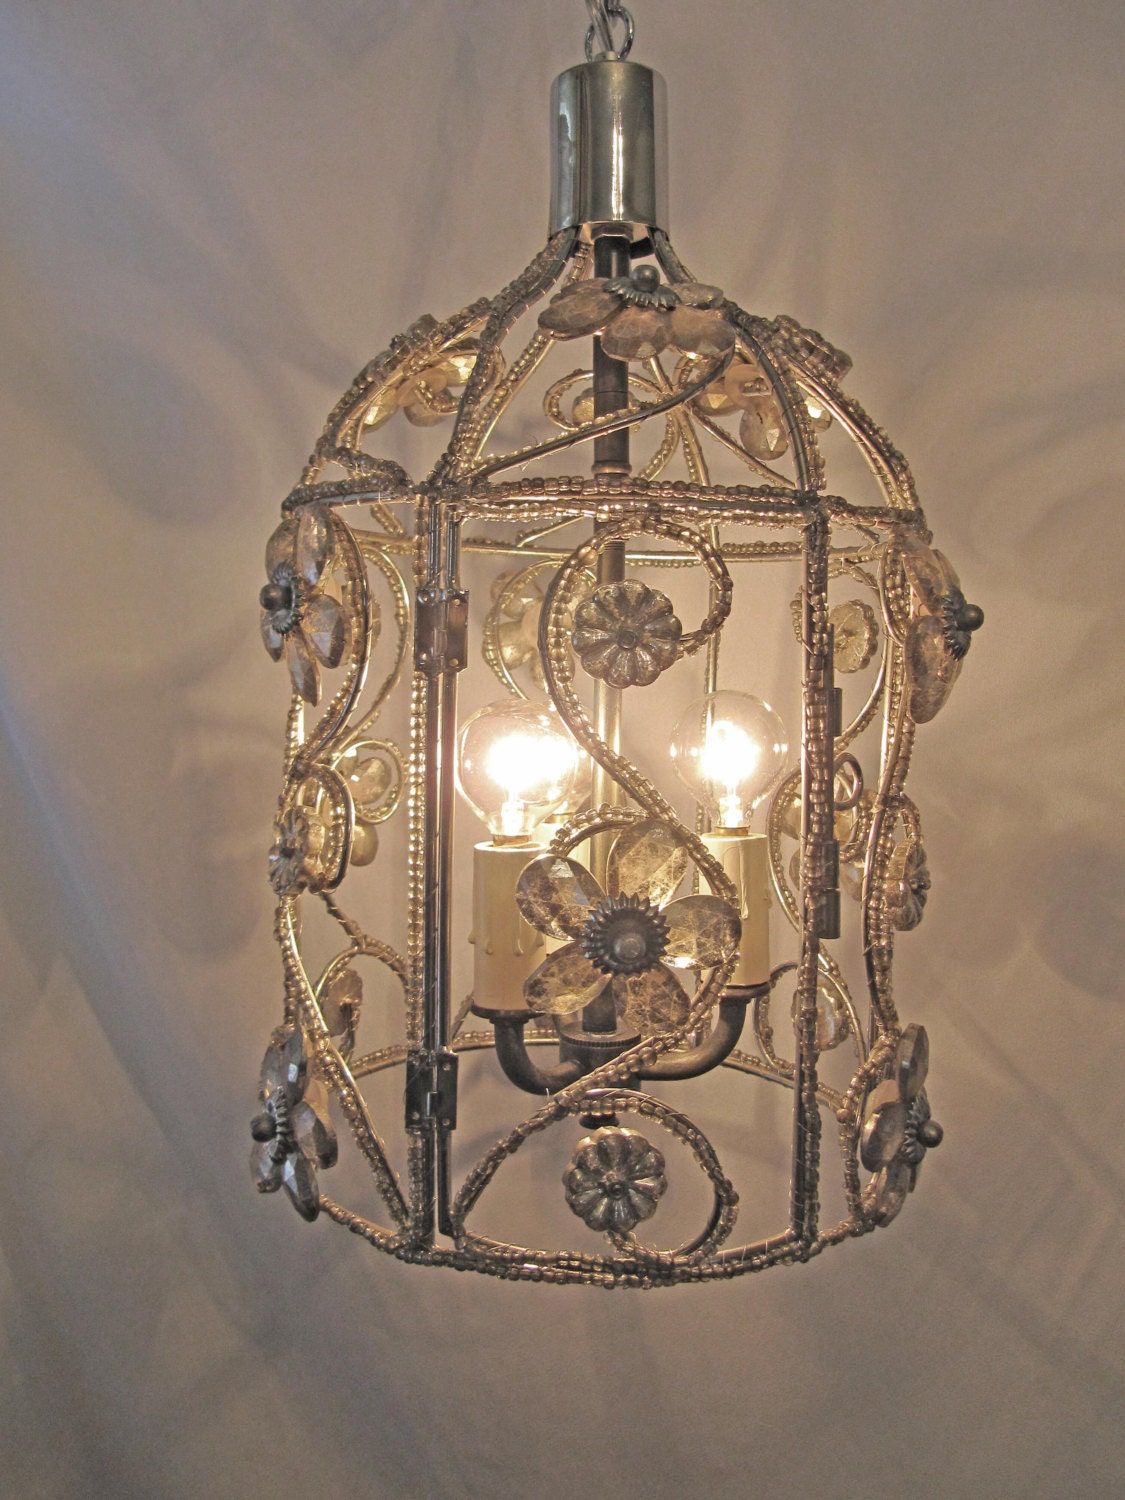 Chandelier bird cage fixture custom repurposed 3 lights nickel - Chandelier glass beads ...